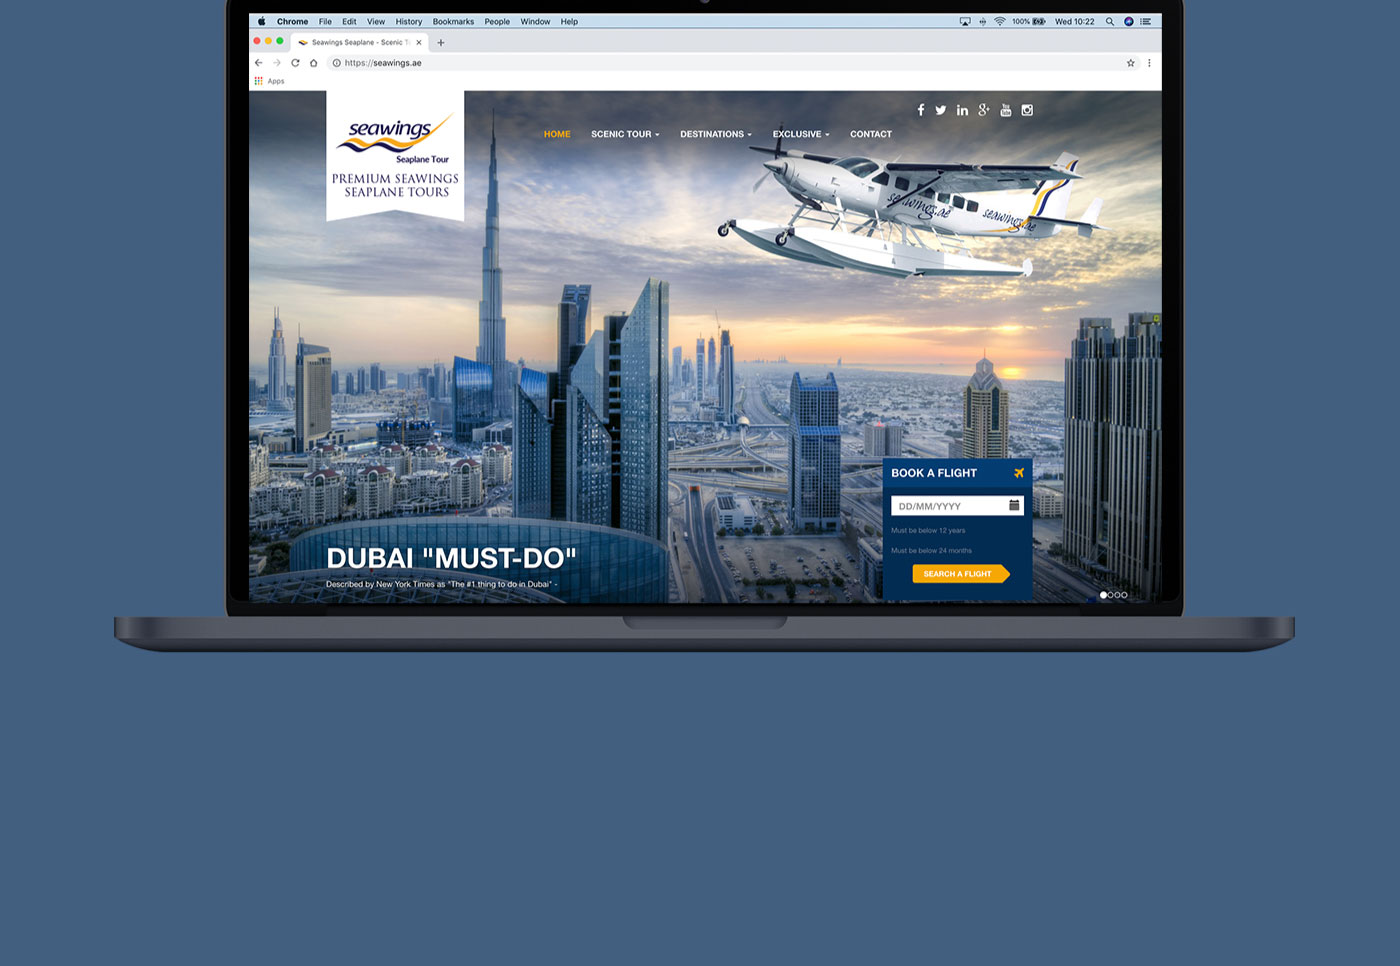 Seawings Seaplane Tours website being showing on a MacBook Pro